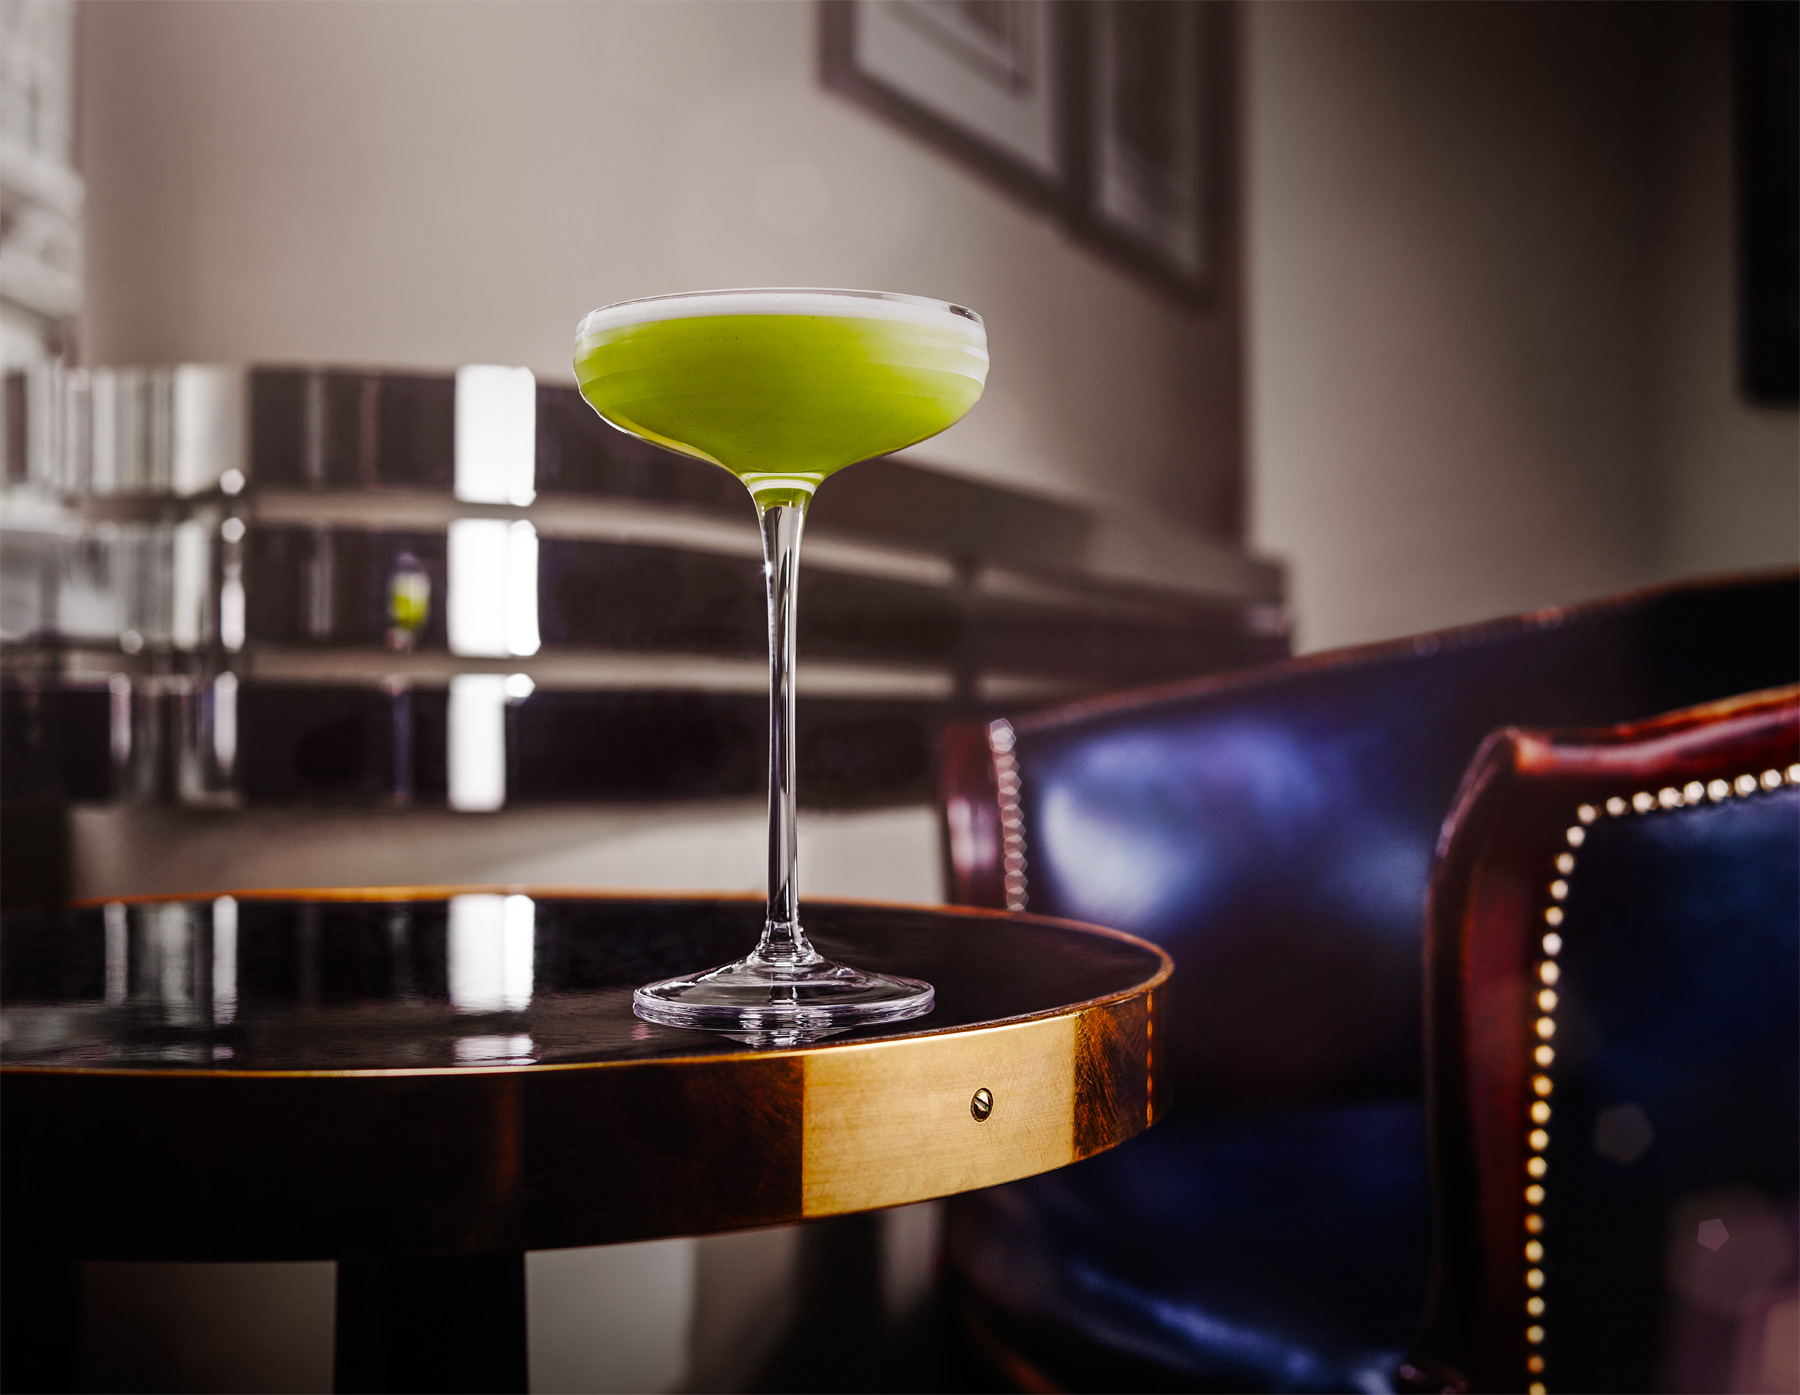 The American Bar at the long-standing Savoy certainly has a tale to tell. This century-old cocktail spot is one of the most iconic in the world – with the likes of Oscar Wilde and Frank Sinatra regularly seen sipping on a short or two way back when.